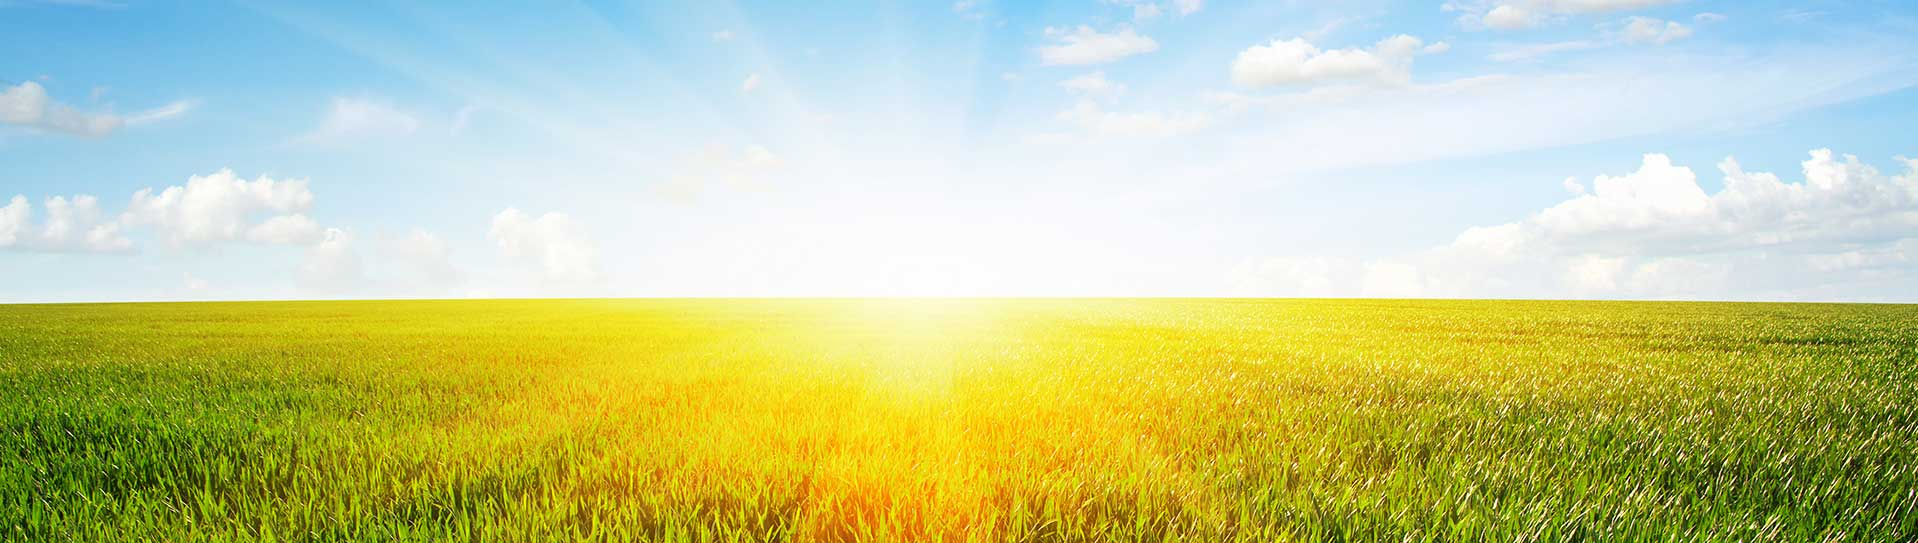 image of a sunrise over a field